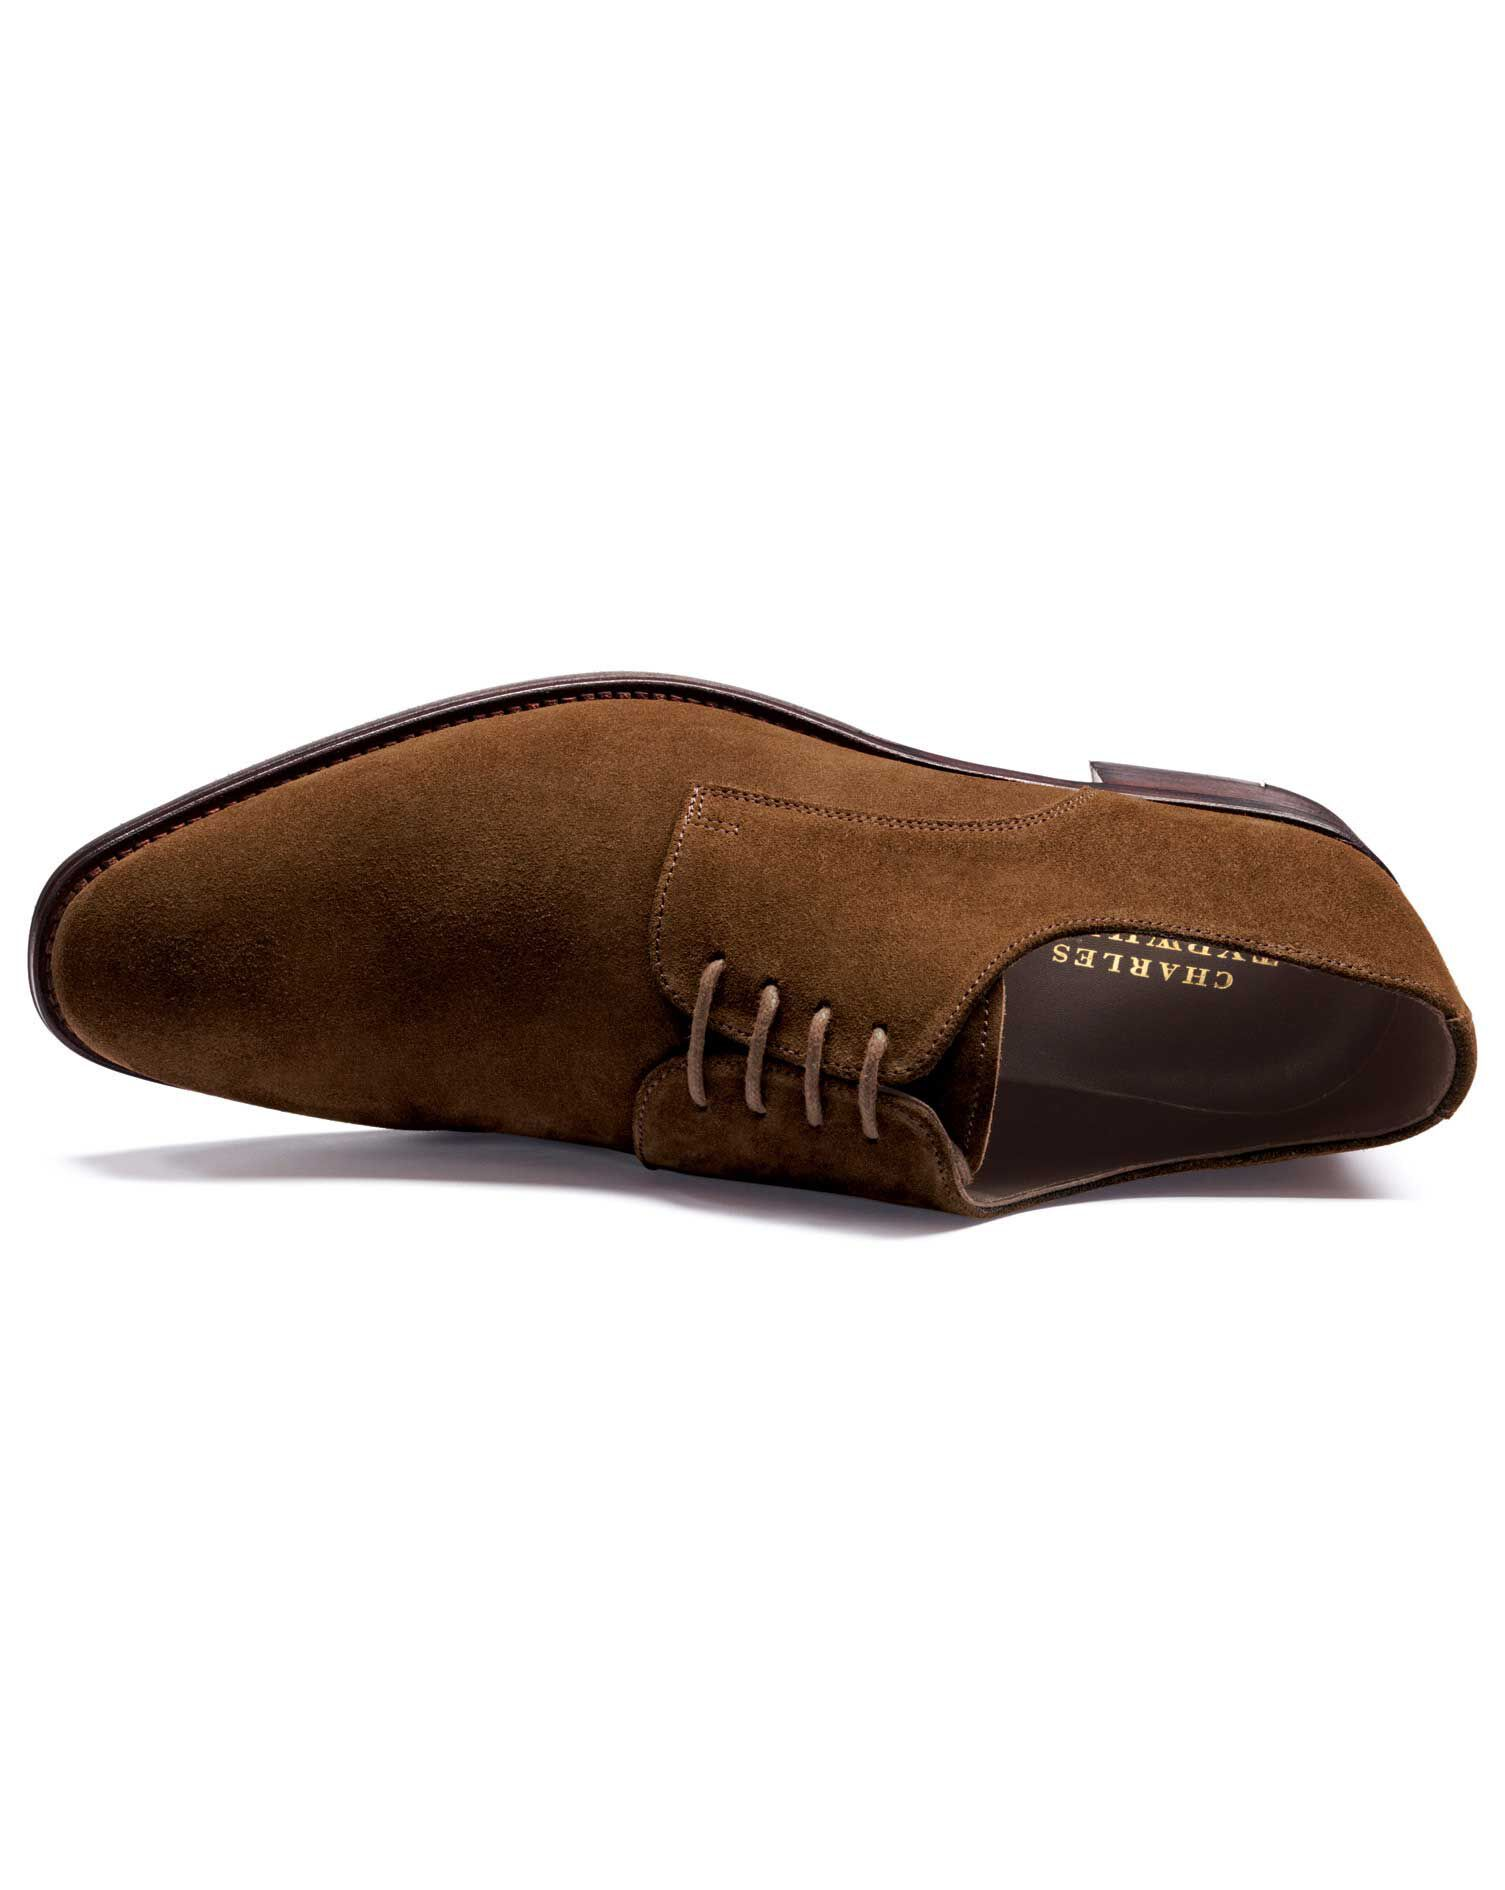 Brown Grosvenor Suede Derby Shoes Size 10 R by Charles Tyrwhitt